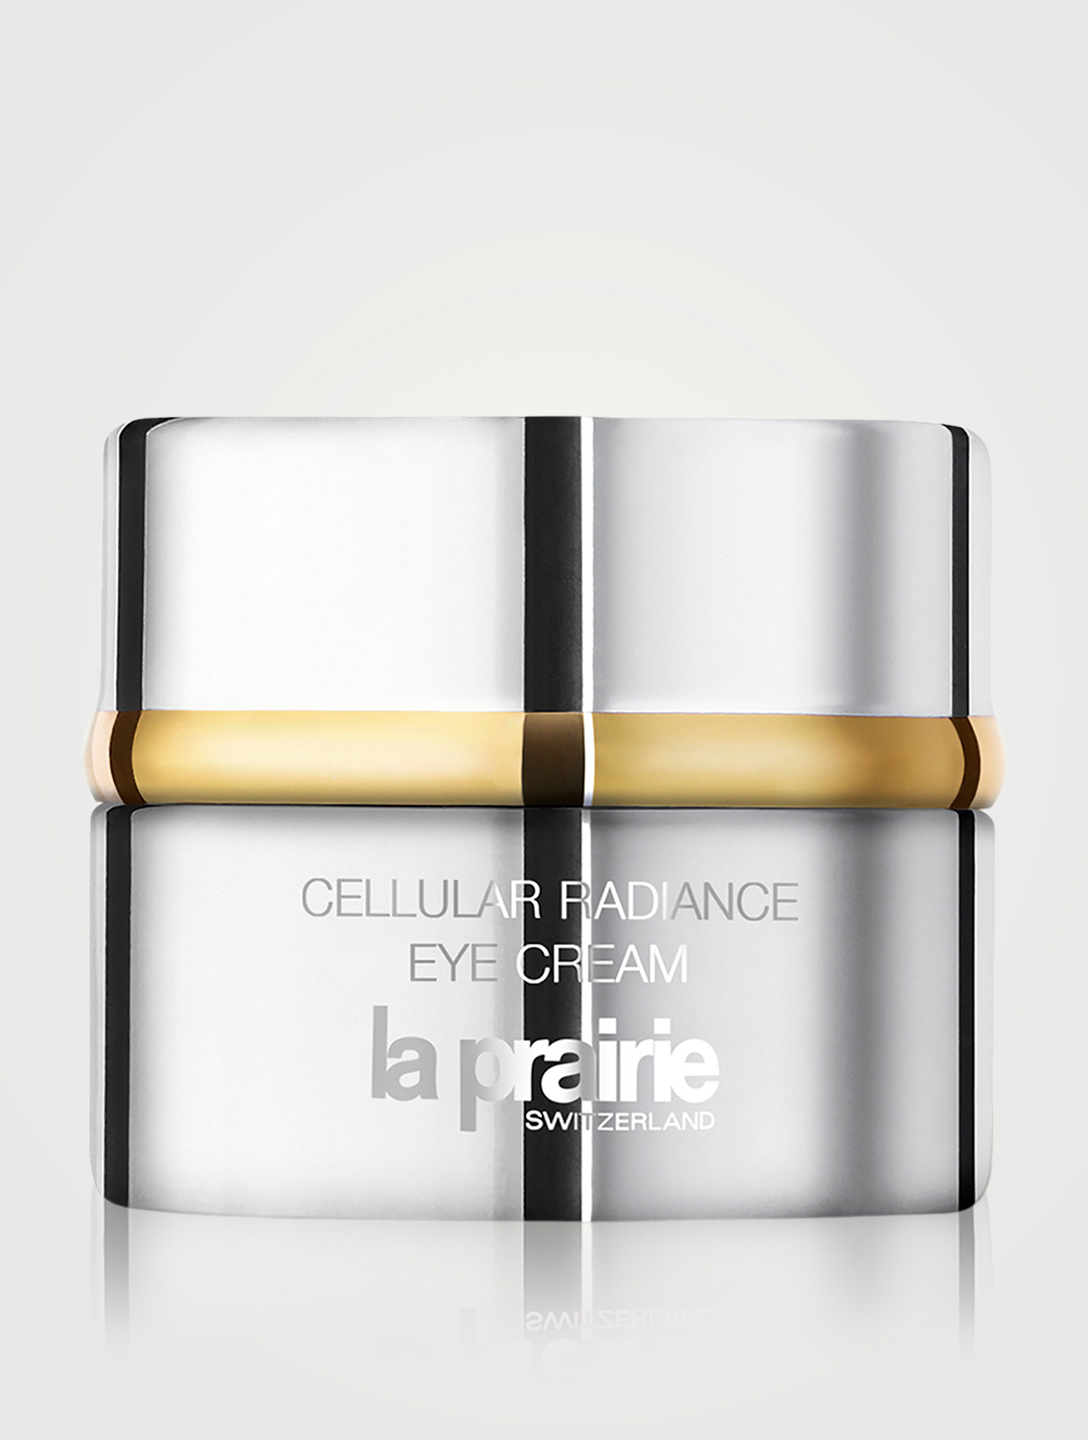 LA PRAIRIE Cellular Radiance Eye Cream Beauty